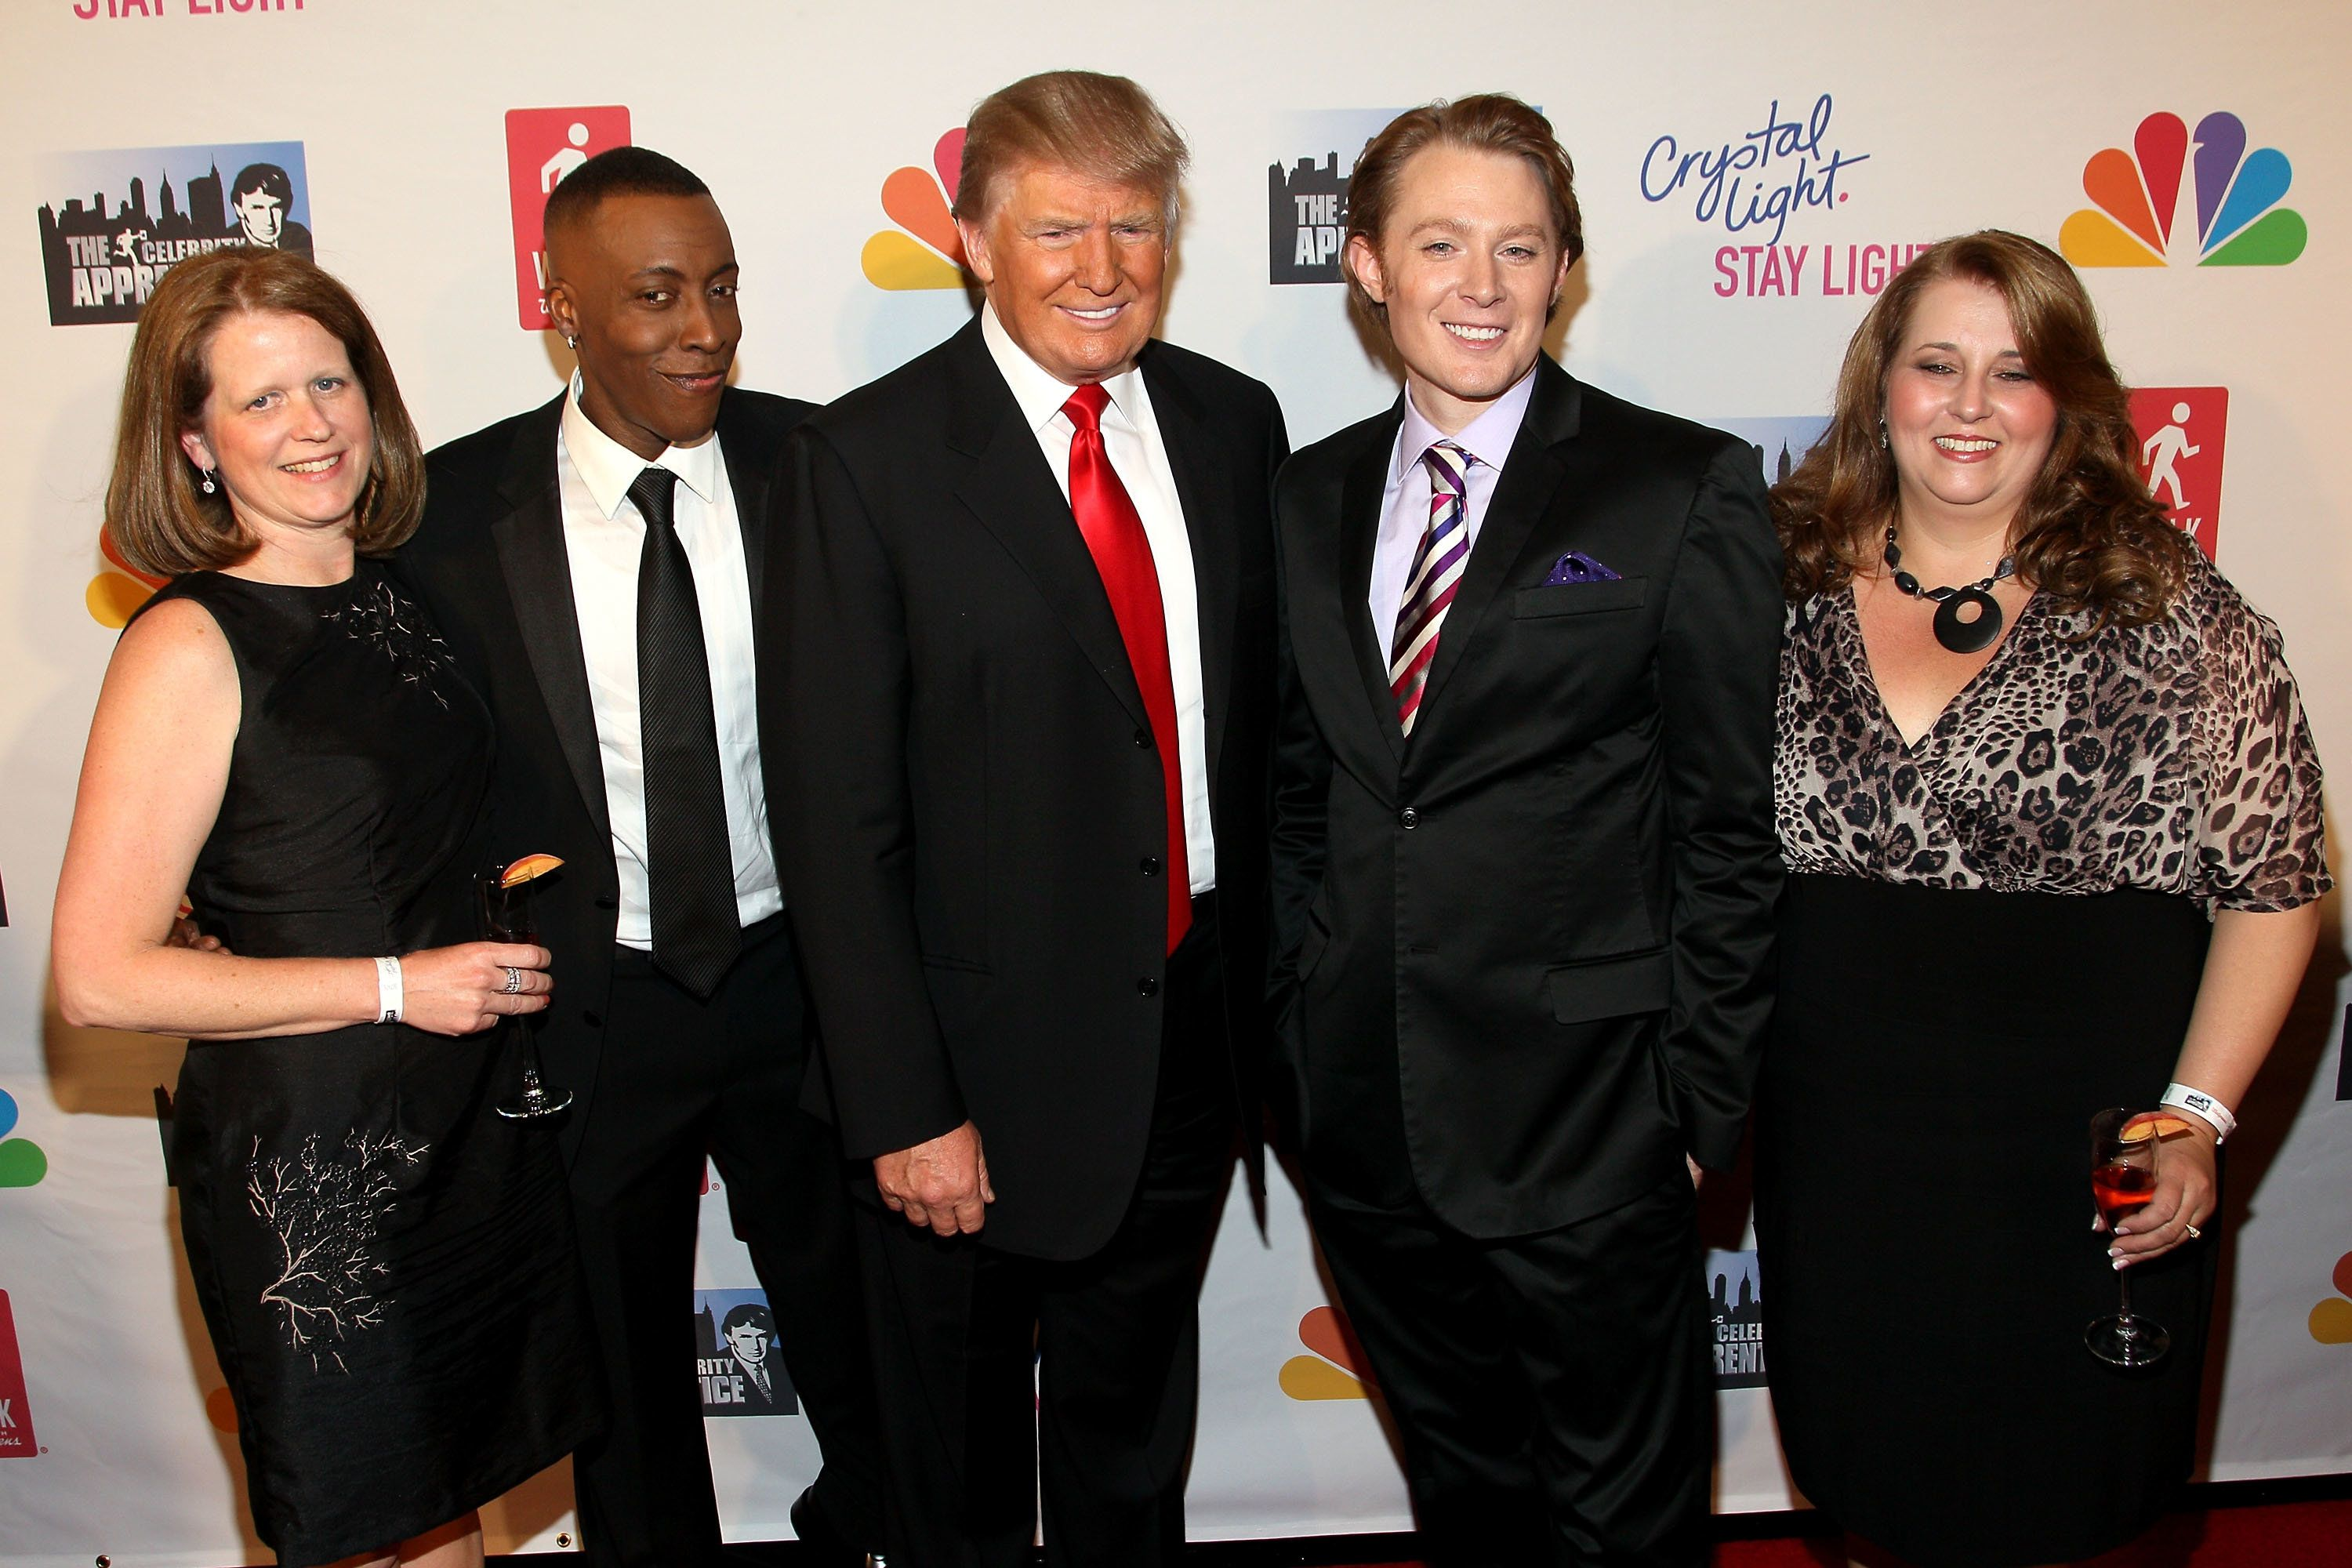 NEW YORK, NY - MAY 20:  Guest, Arsenio Hall, Donald Trump and Clay Aiken and guest attend the 'Celebrity Apprentice' Live Finale at American Museum of Natural History on May 20, 2012 in New York City.  (Photo by Steve Mack/FilmMagic)